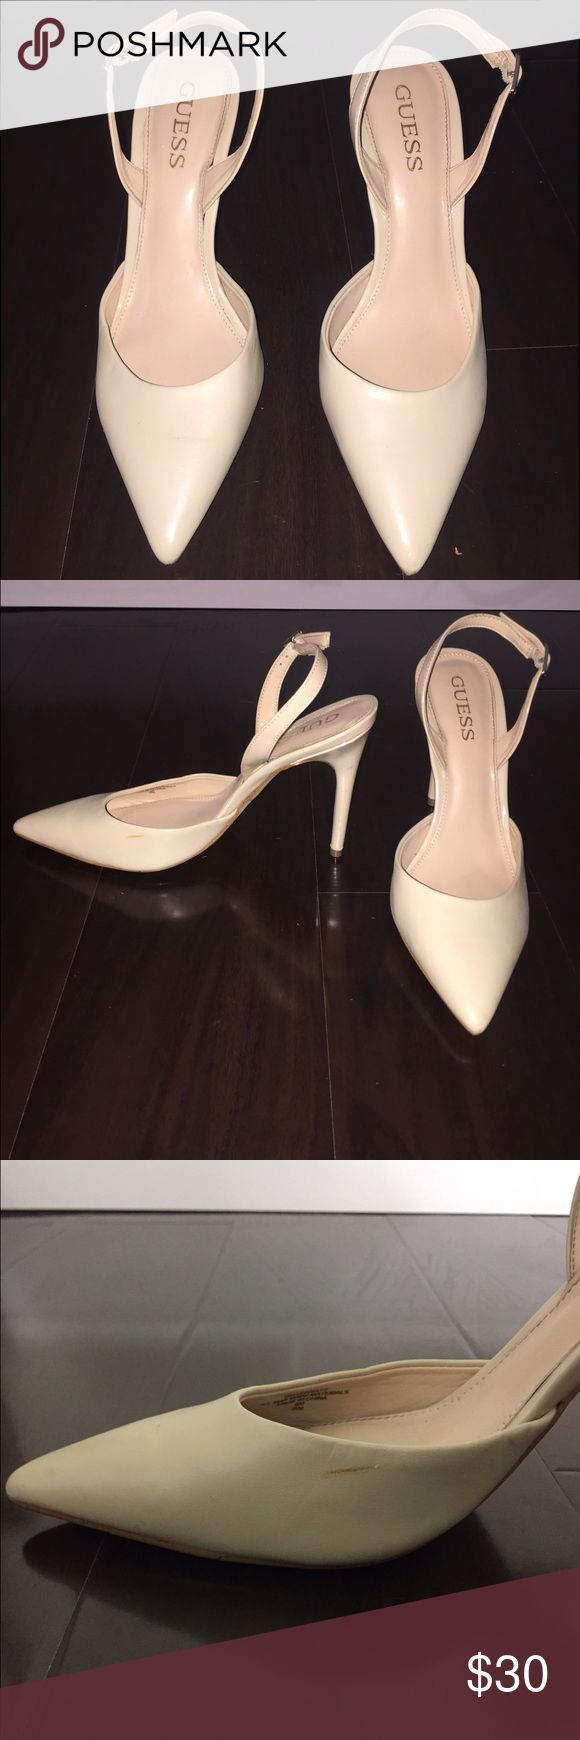 "Guess Nude Point Toe Back Strap Heels Guess Nude heels, size 8. A few scuffs as shown in photos. Worn once. Heel size approximately 4"". Guess Shoes Heels"